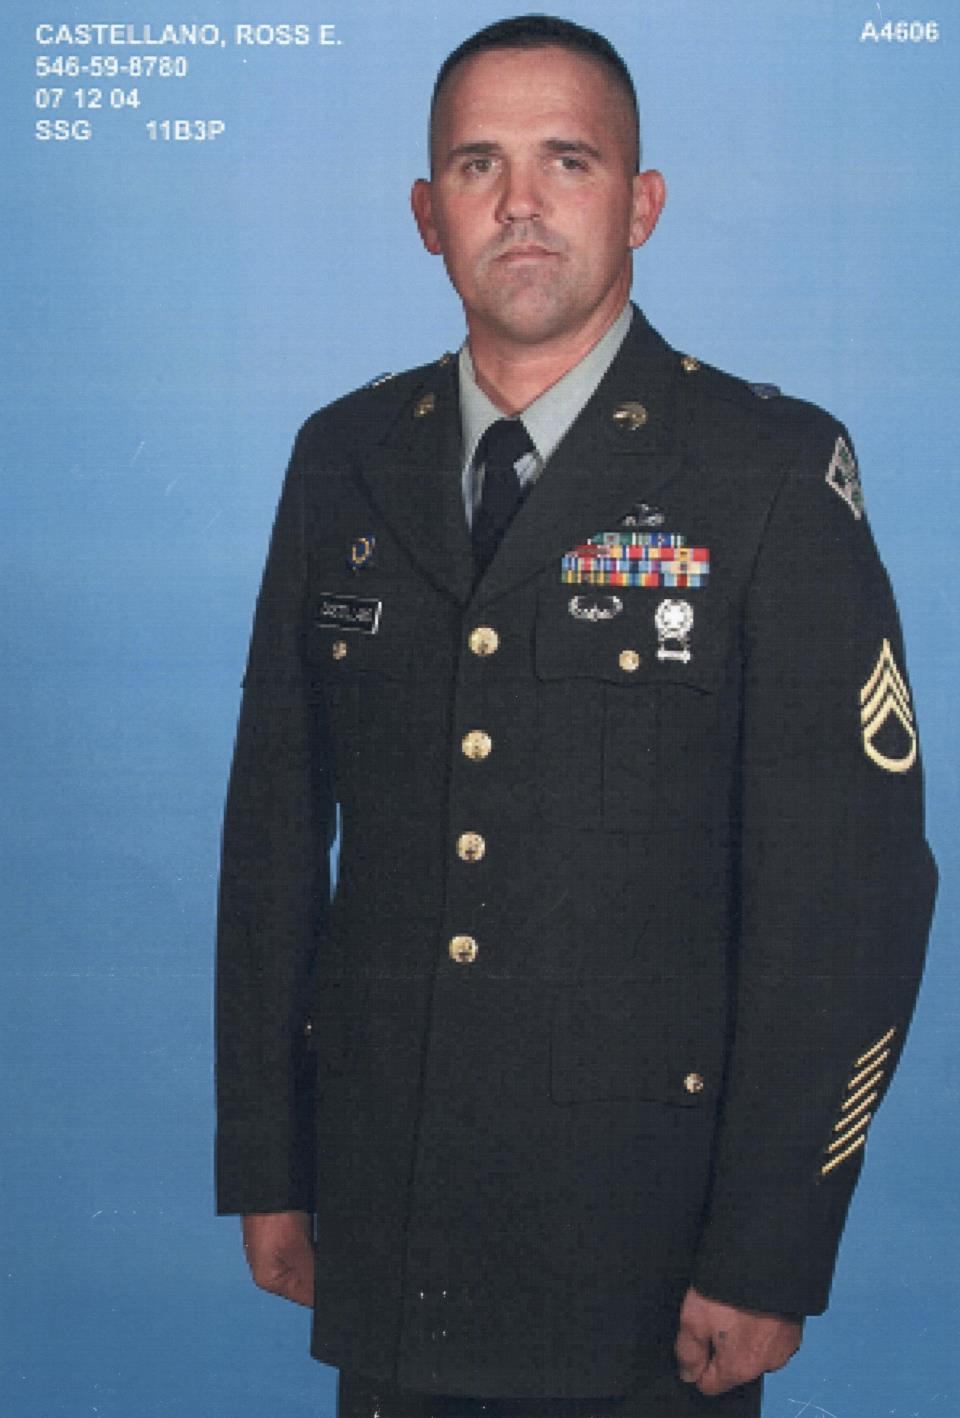 Ross E. Castellano, Army